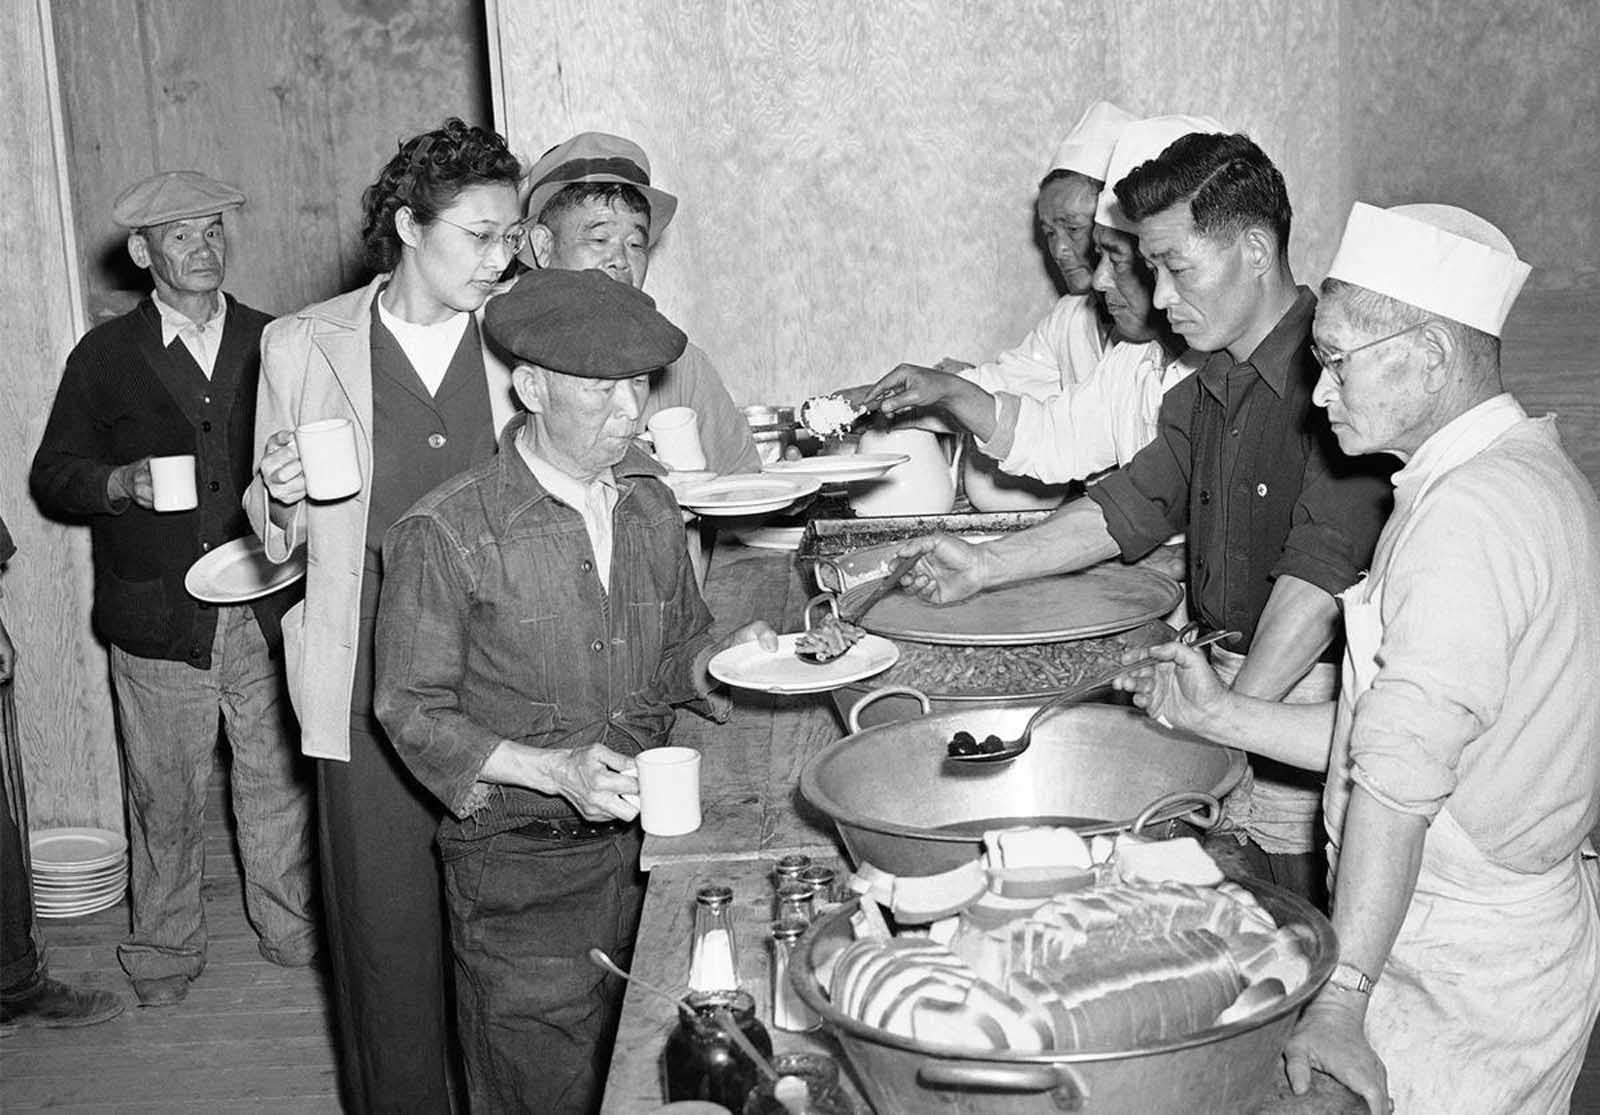 apanese Americans removed from their Los Angeles homes line up at Manzanar Relocation Center, in California, on March 23, 1942, for their first meal after arrival at the camp. Rice, Beans, Prunes, and bread were included in the menu.